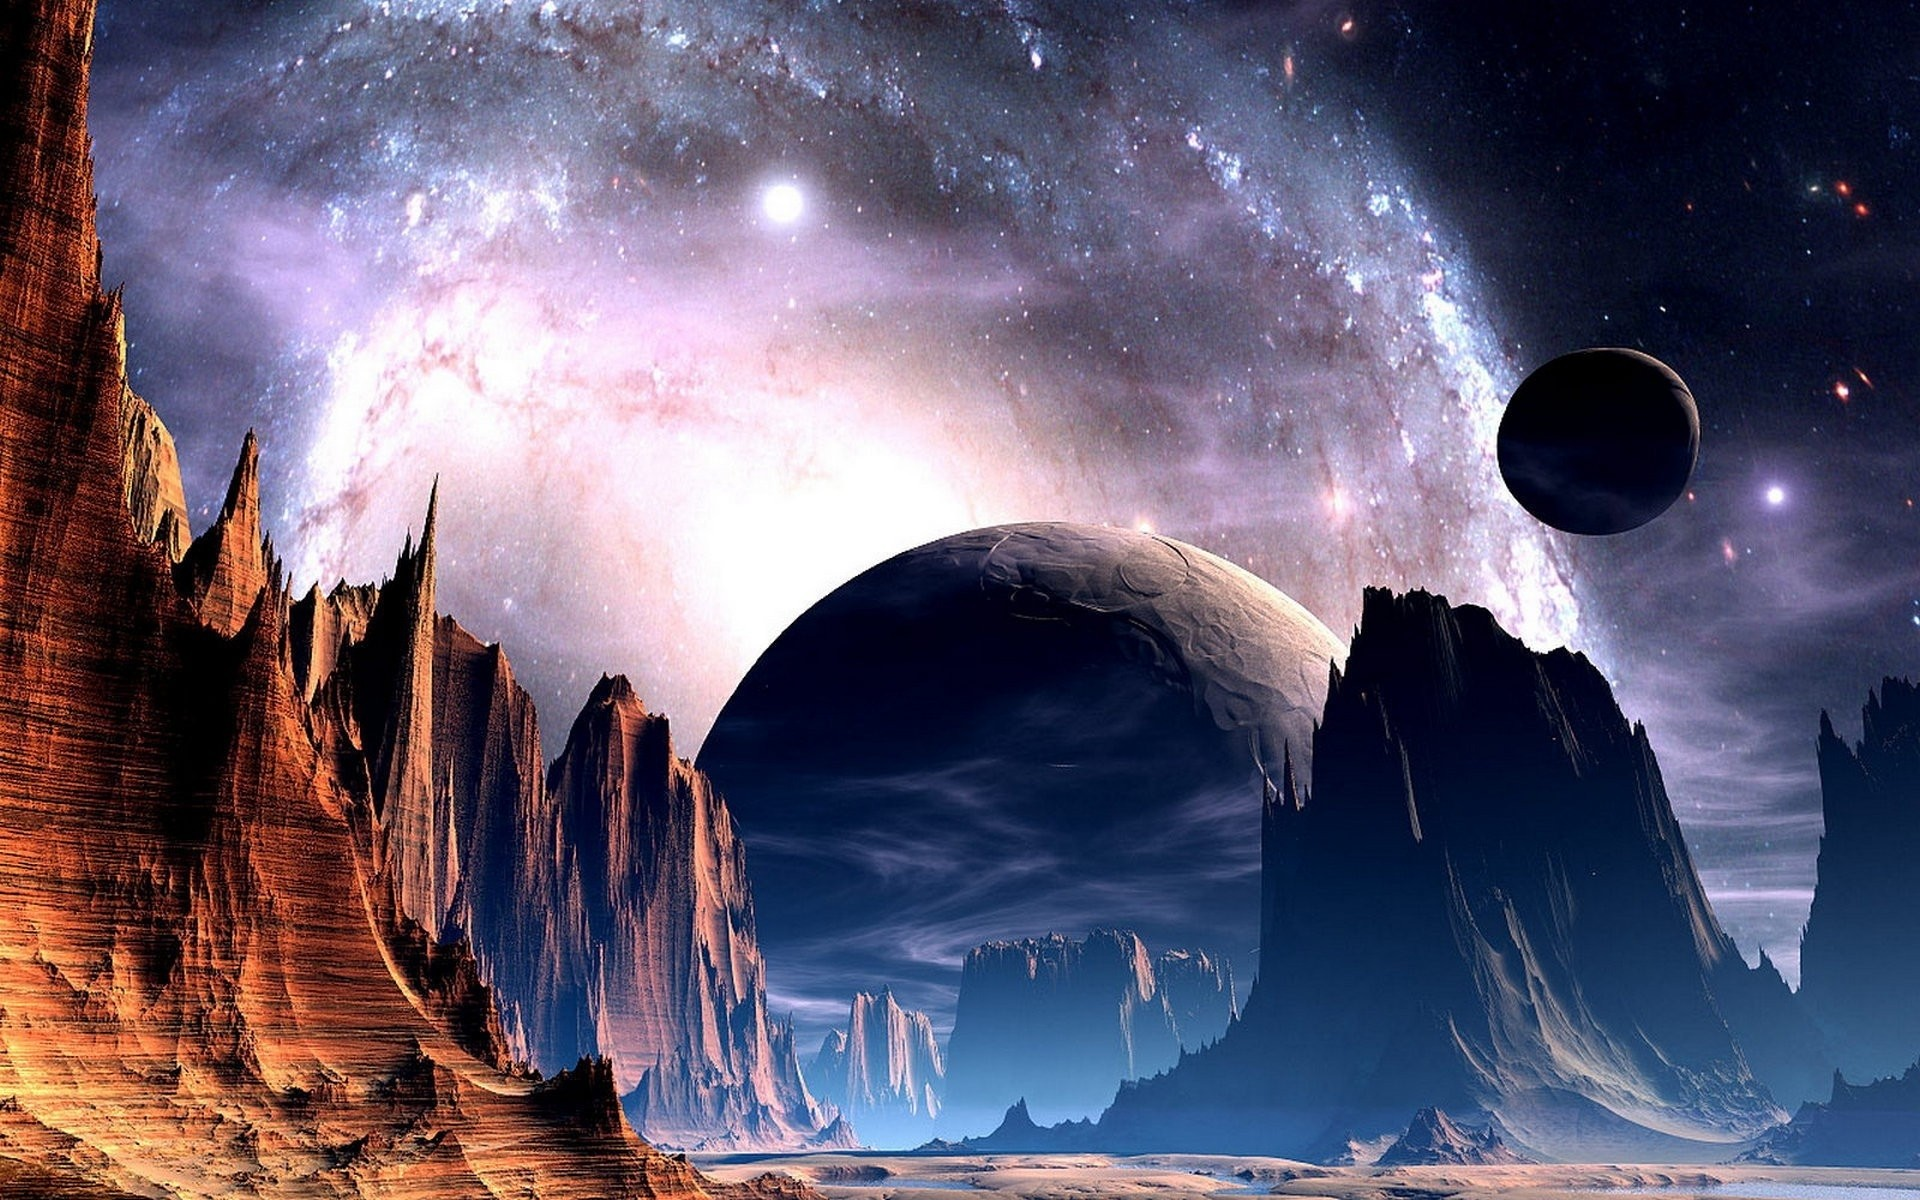 Res: 1920x1200, Sci fi science fiction planets alien sky stars nebula galaxy space universe  light bright nature landscapes mountains cliff valley spire art artistic ...